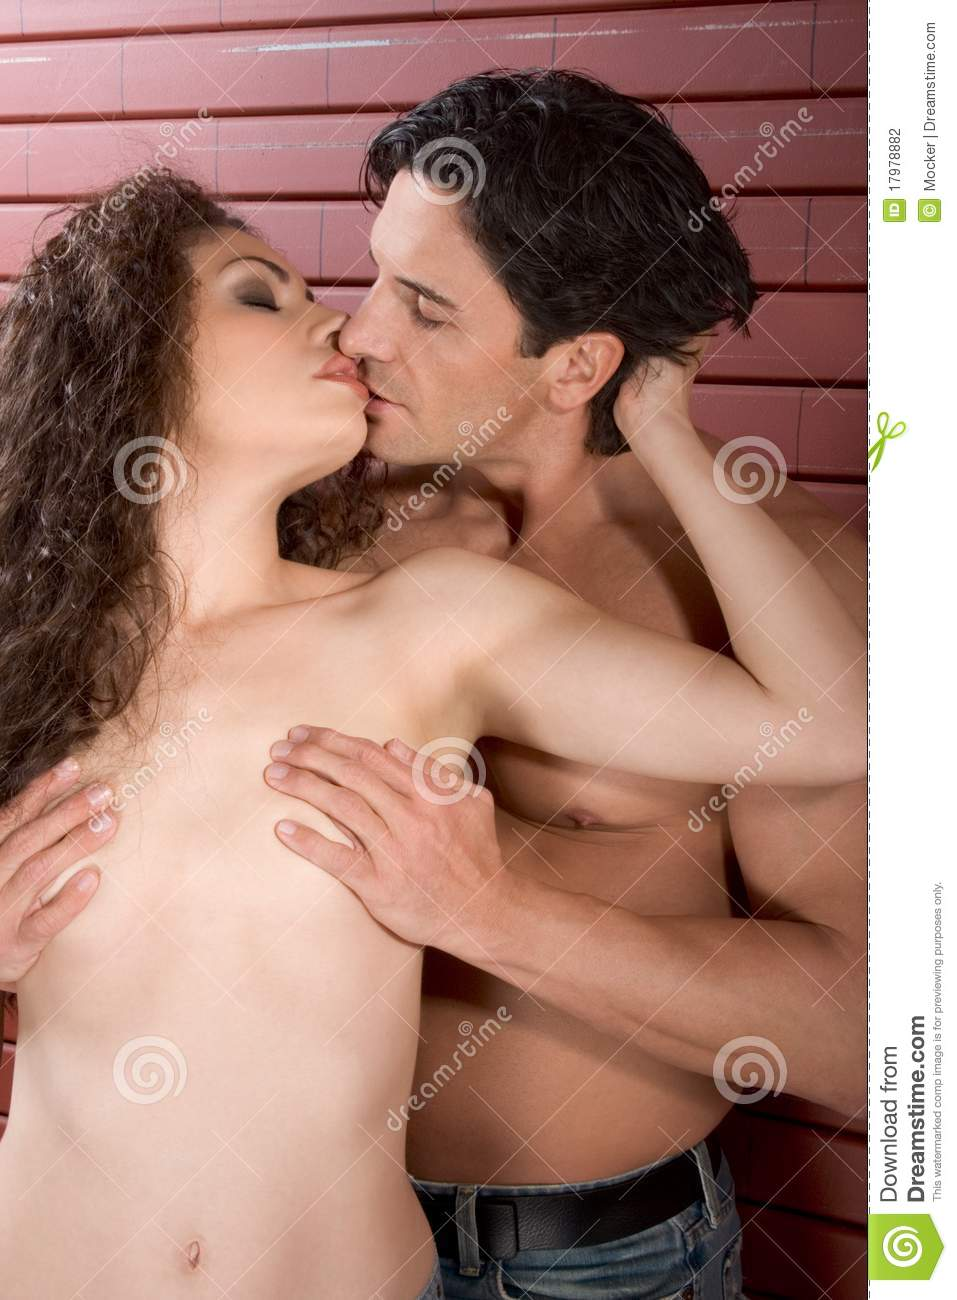 On Nude man breast kissing